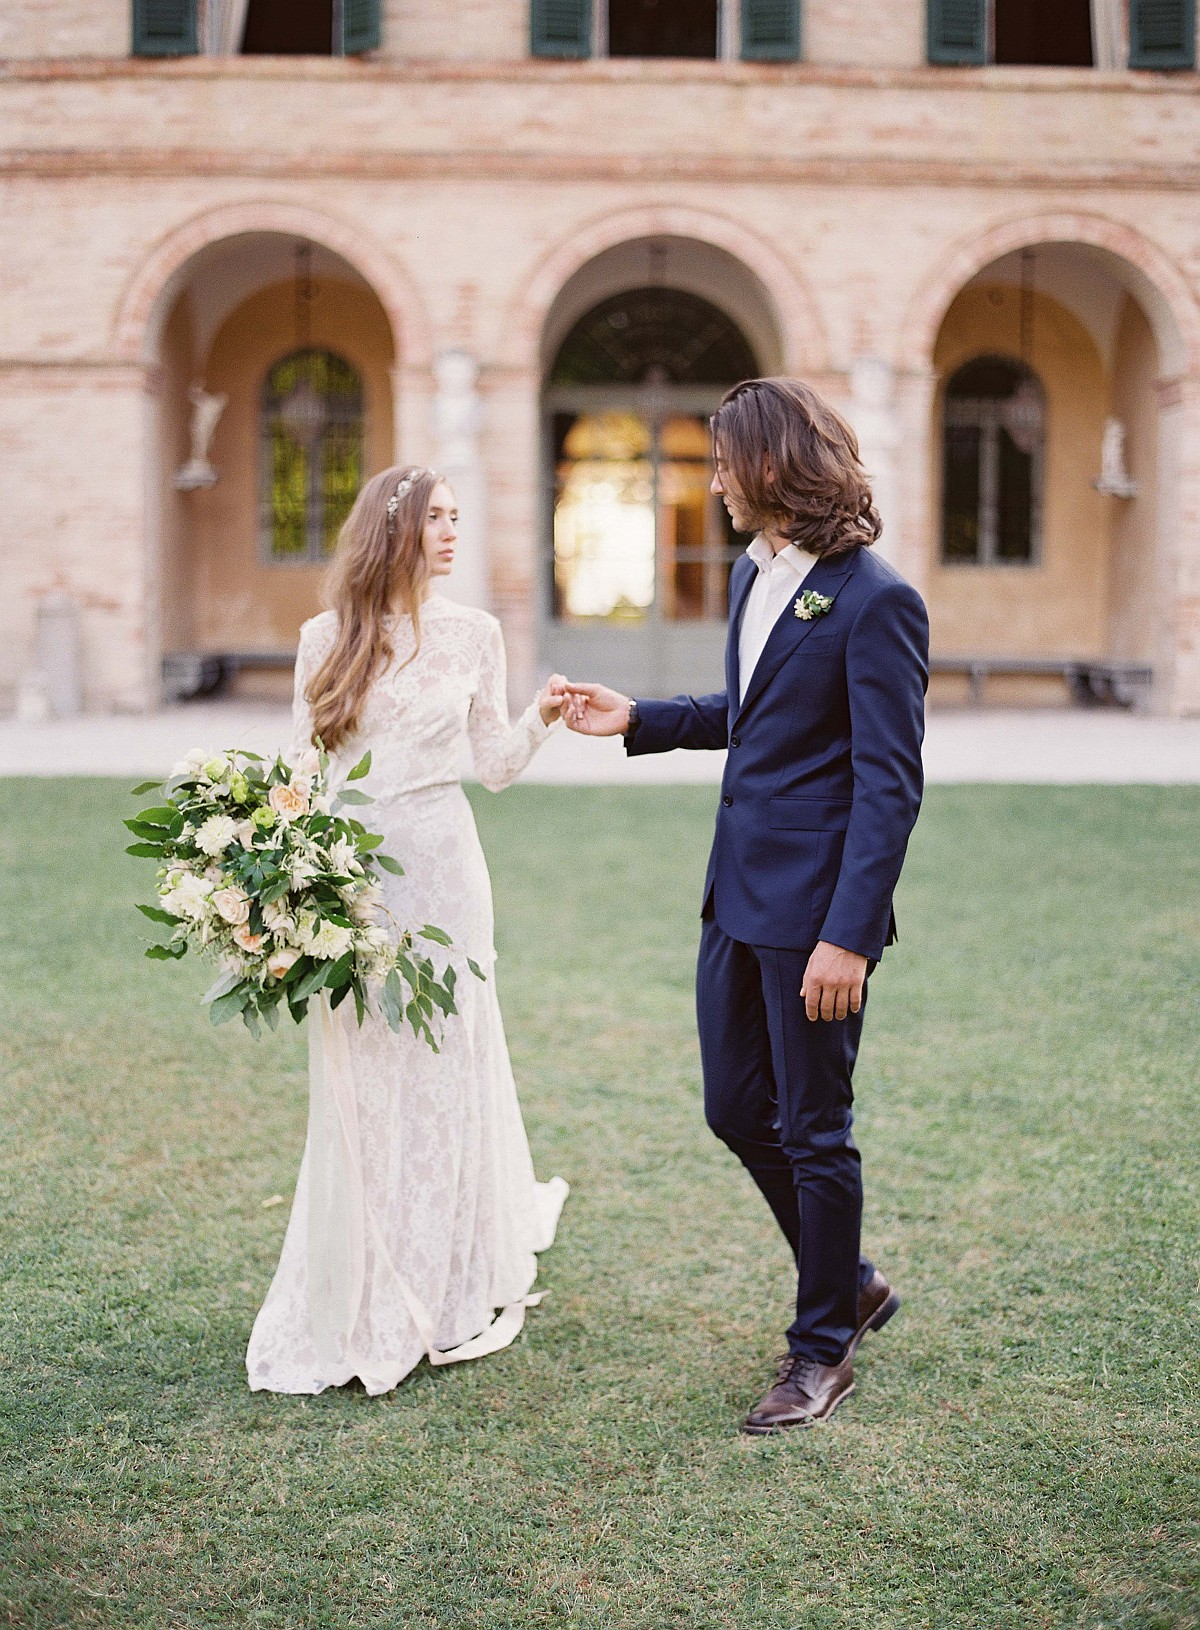 Reminiscent Destination Wedding in Italy